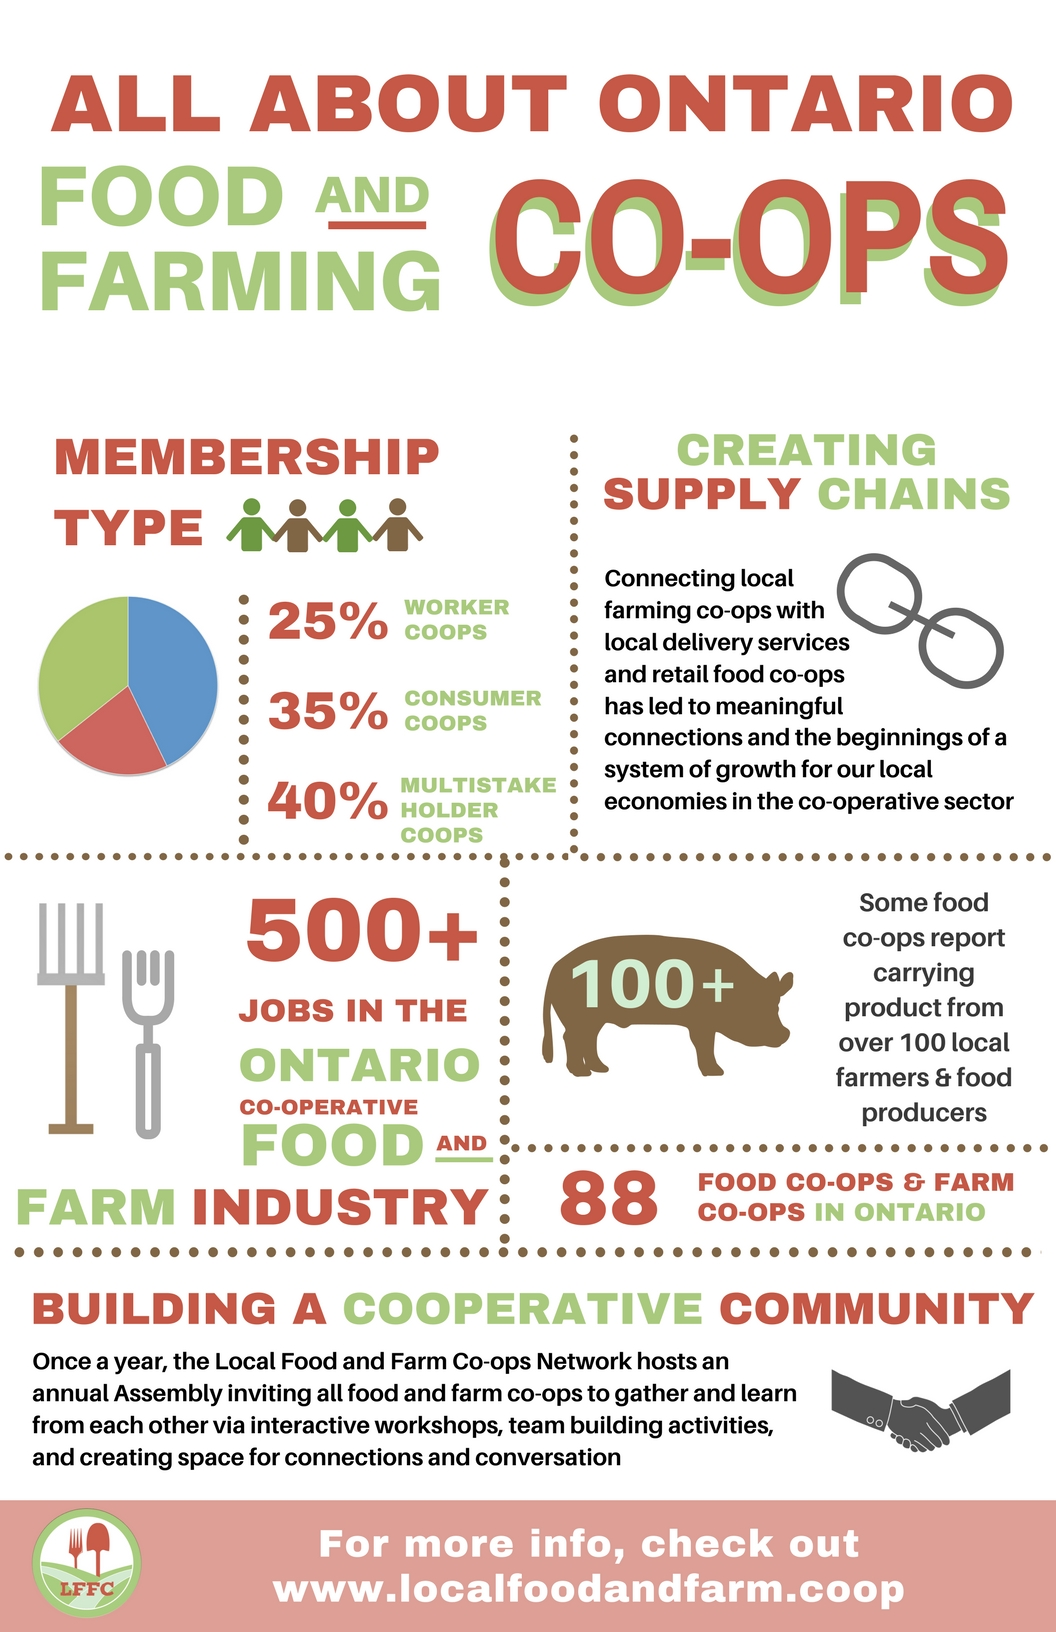 All About Ontario Food and Farming Co-ops